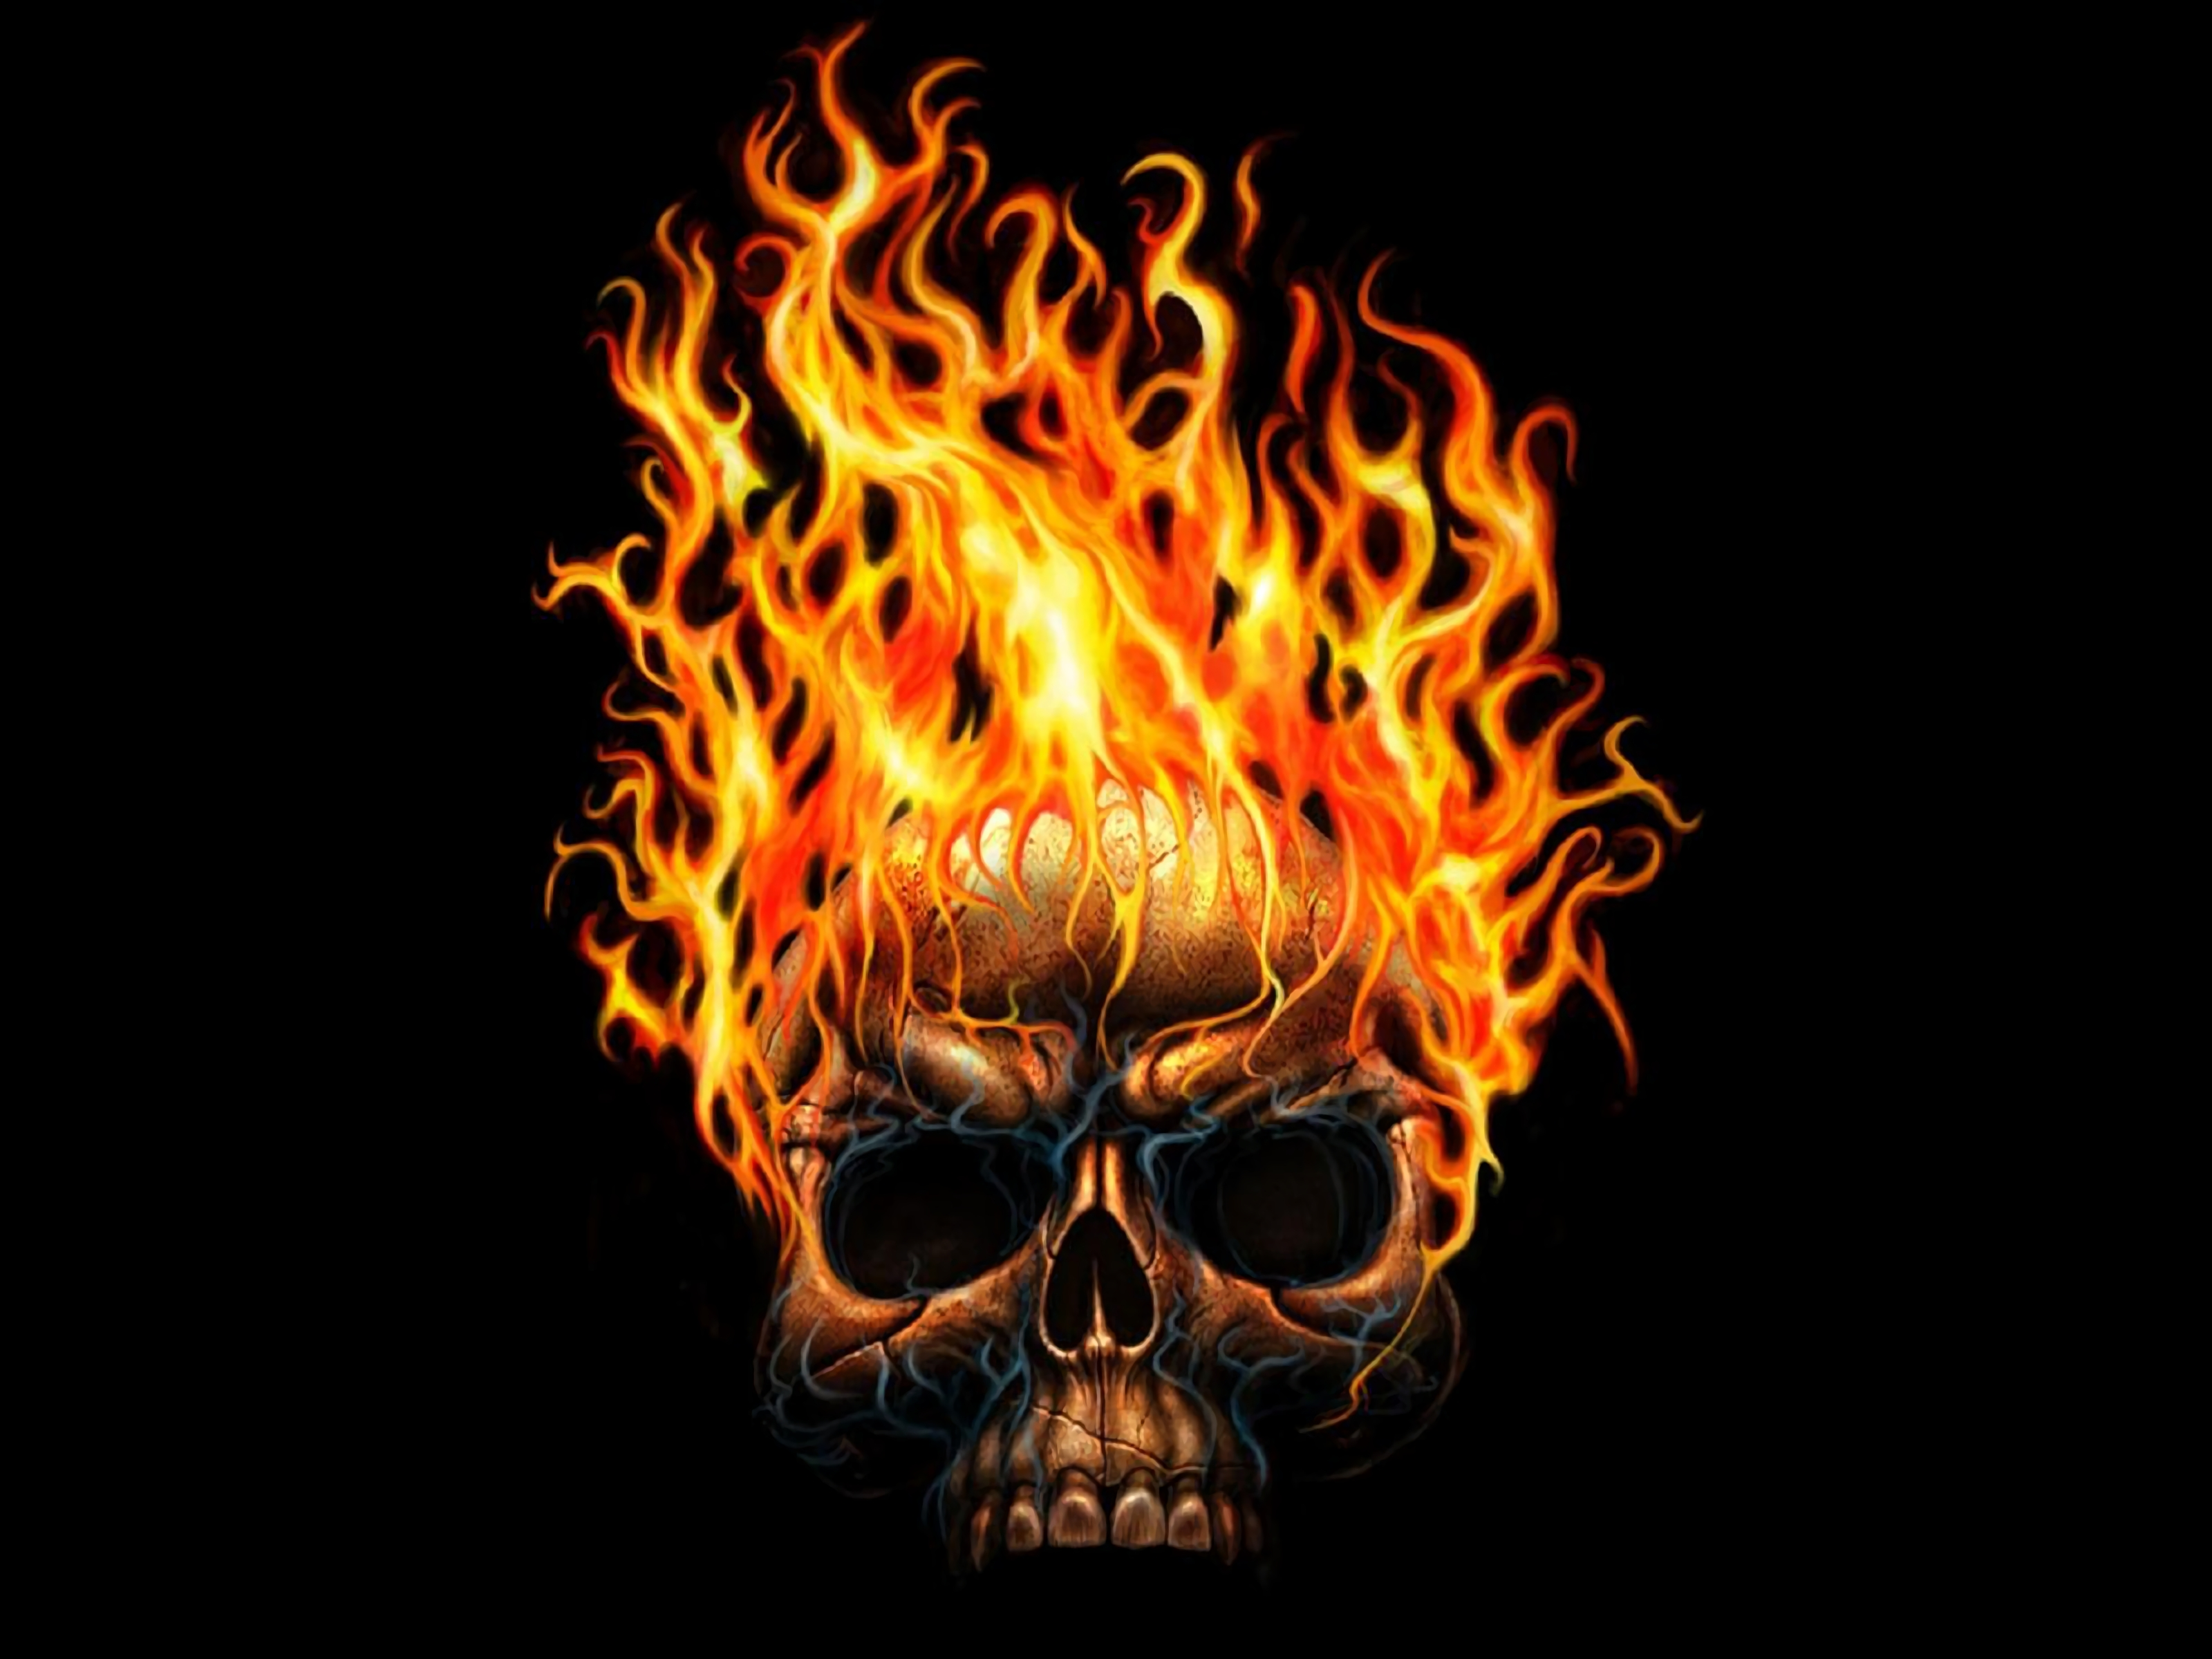 732 skull hd wallpapers | background images - wallpaper abyss